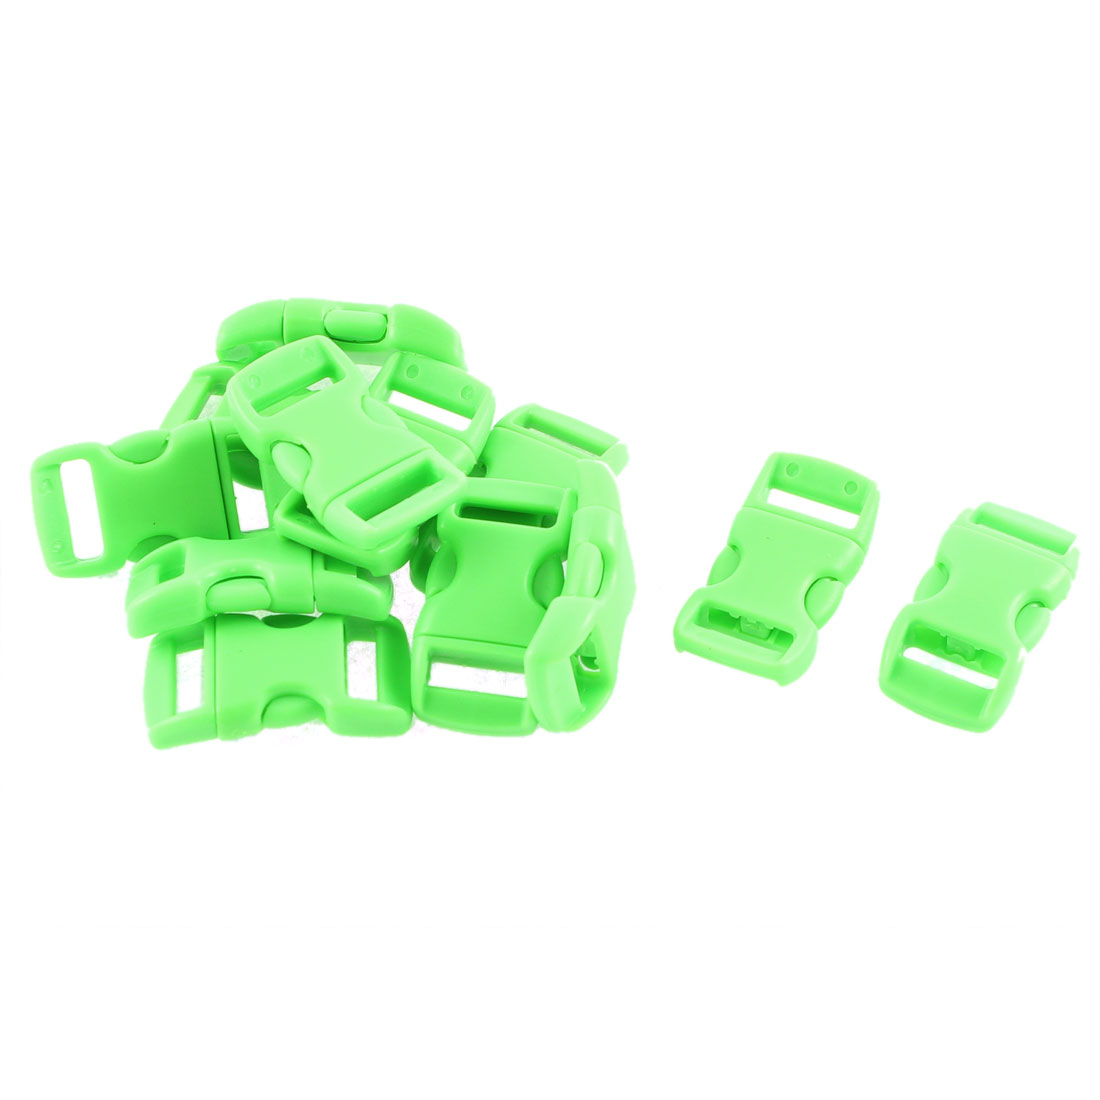 Webbing Strap Backpack Plastic Side Release Buckle Green 11mm Width Band 12pcs